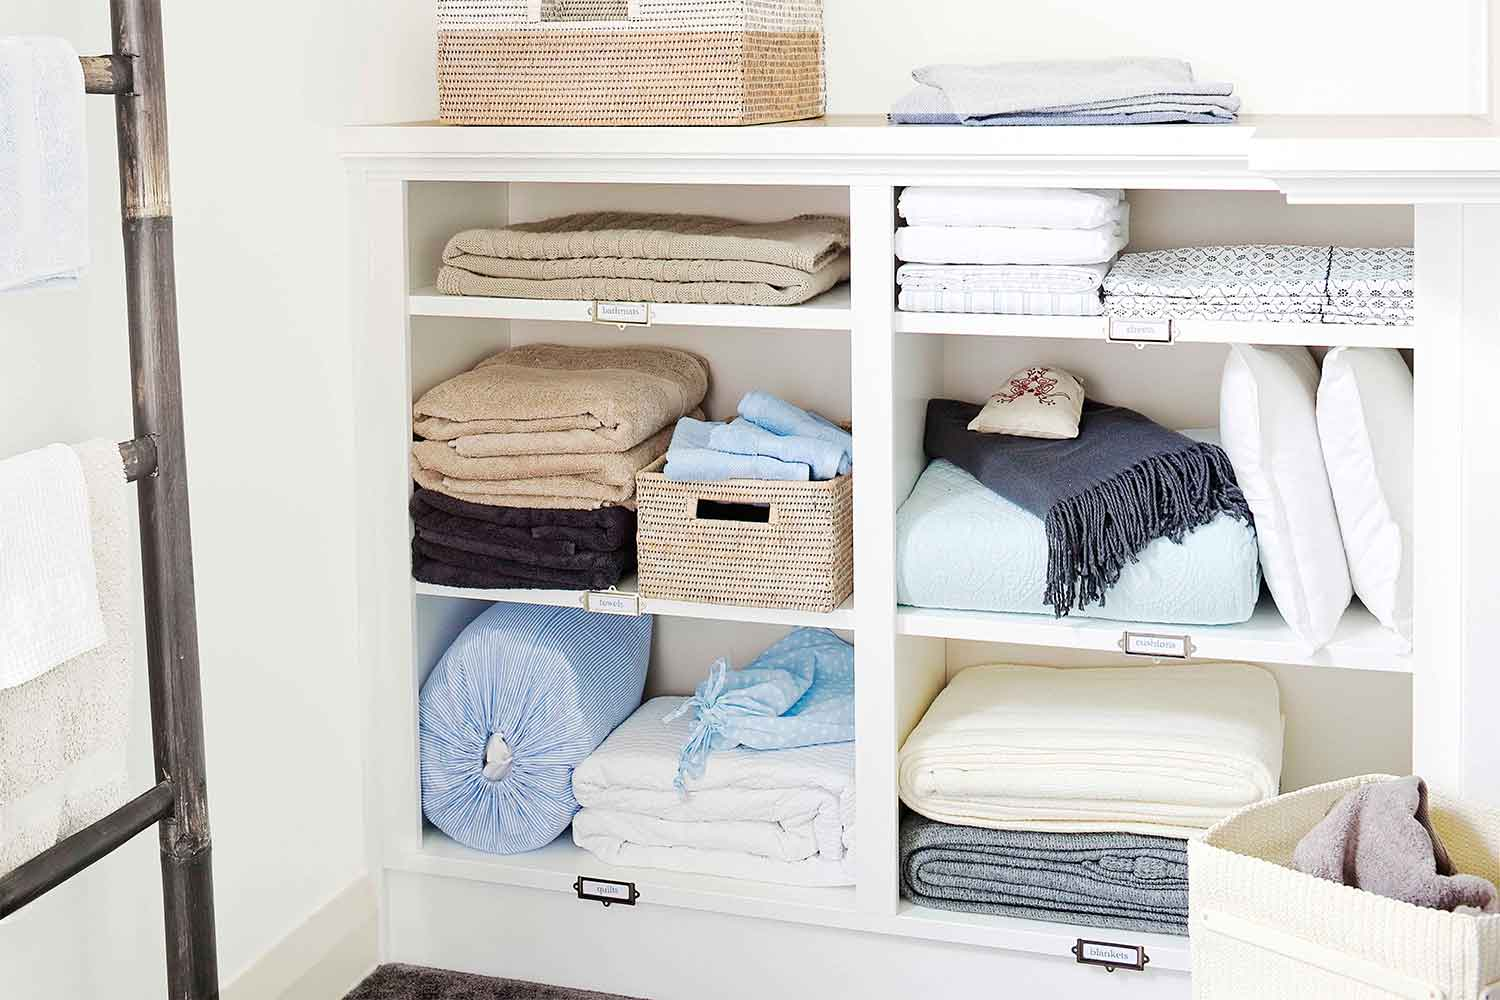 Clean And Organise Your Linen Cupboard With These Bright